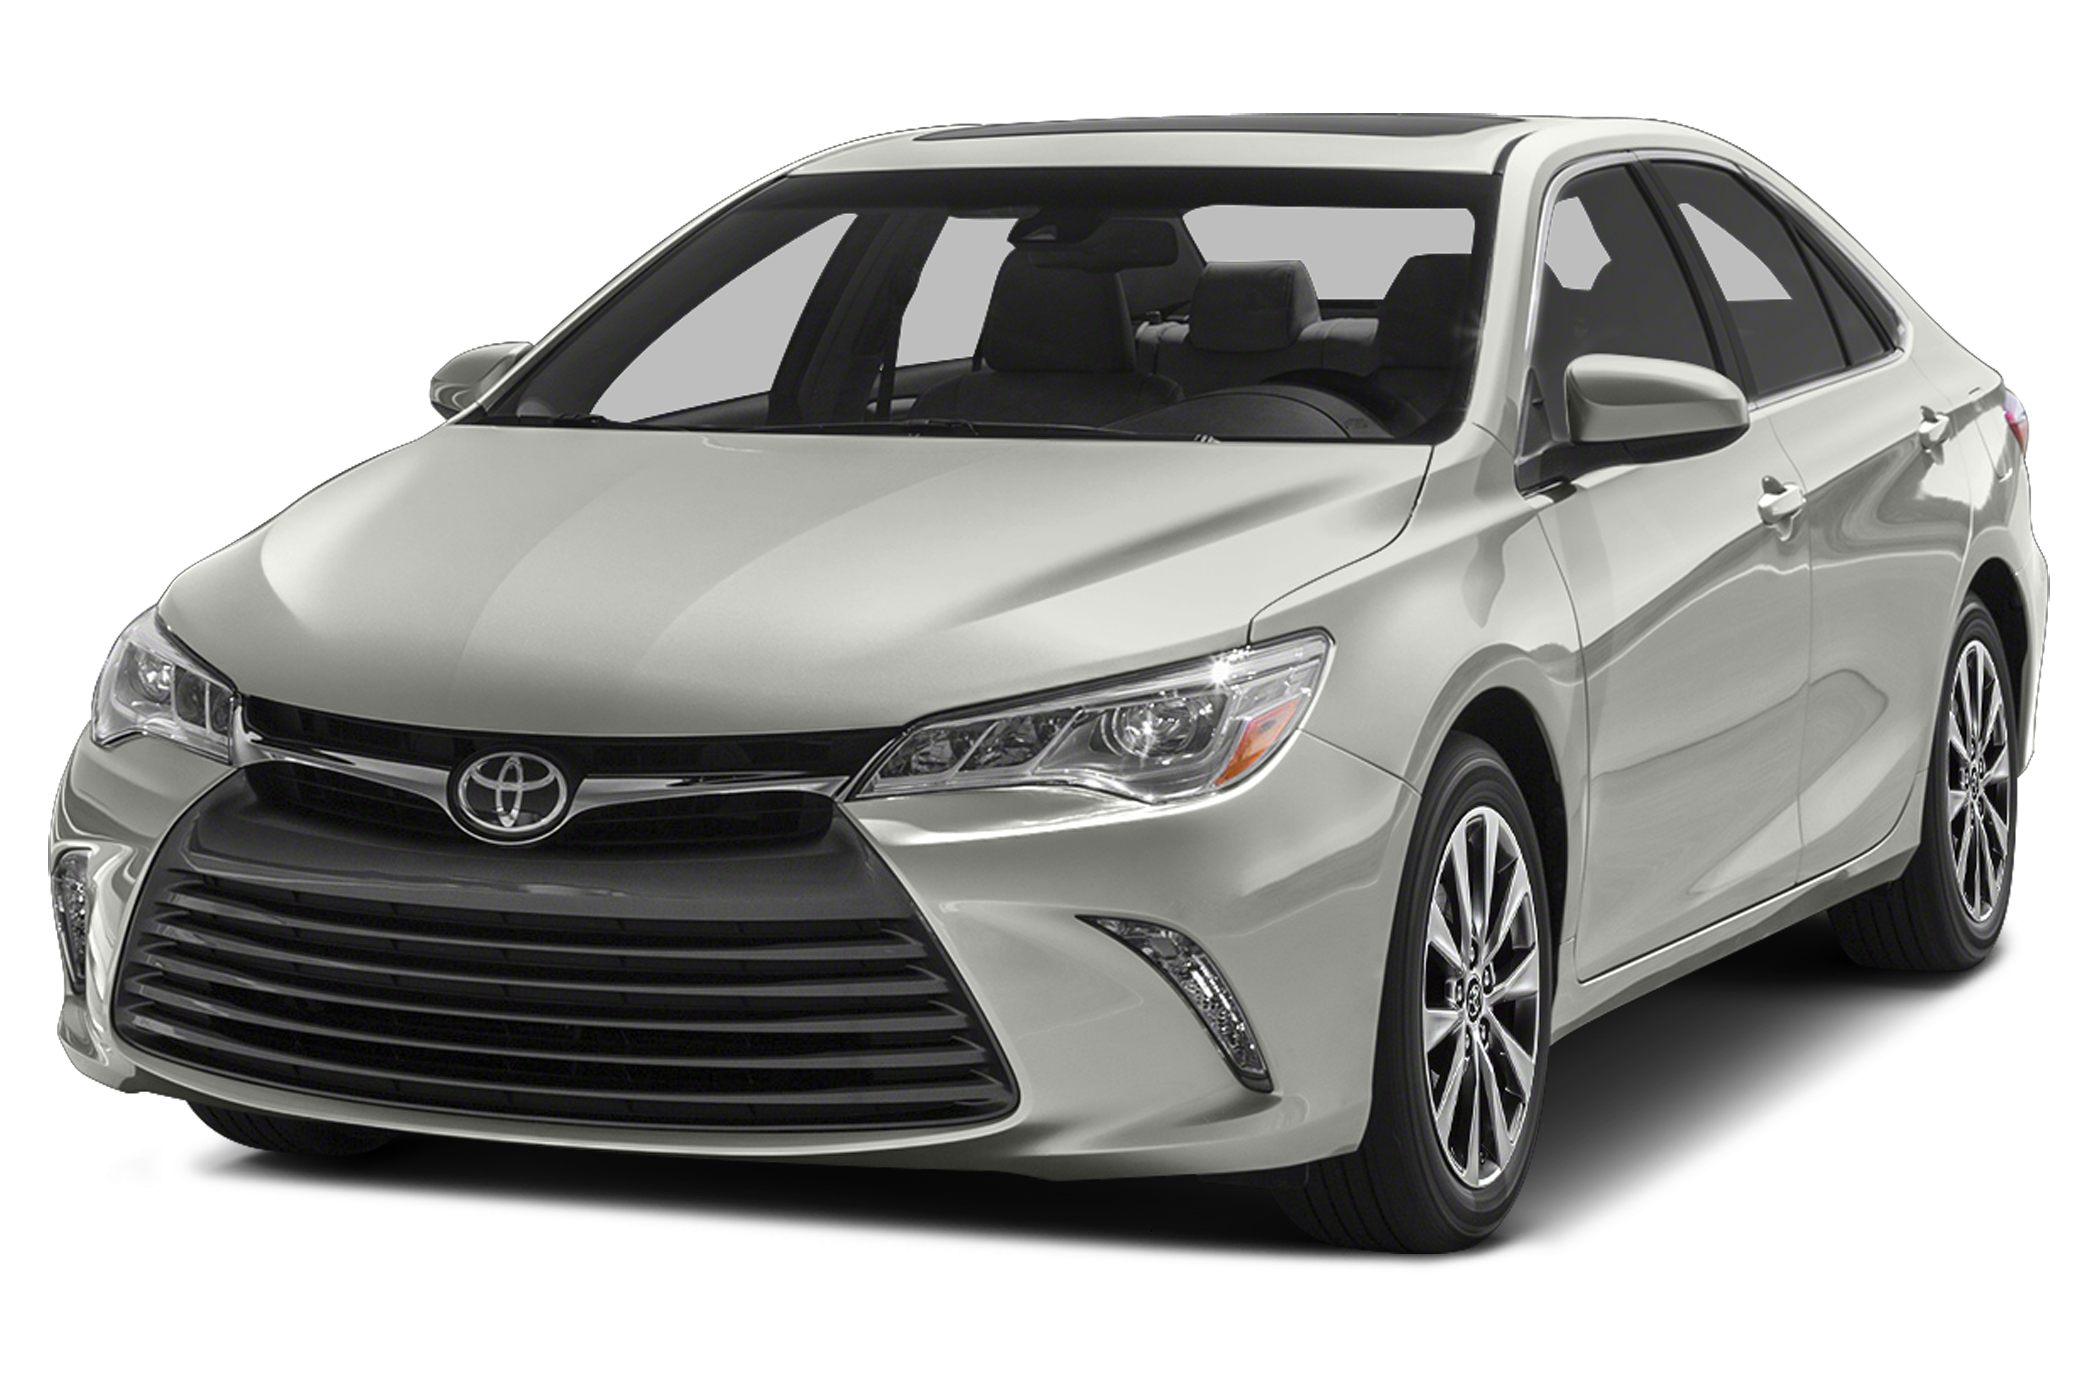 2015 Toyota Camry LE Sedan for sale in Bethesda for $20,669 with 0 miles